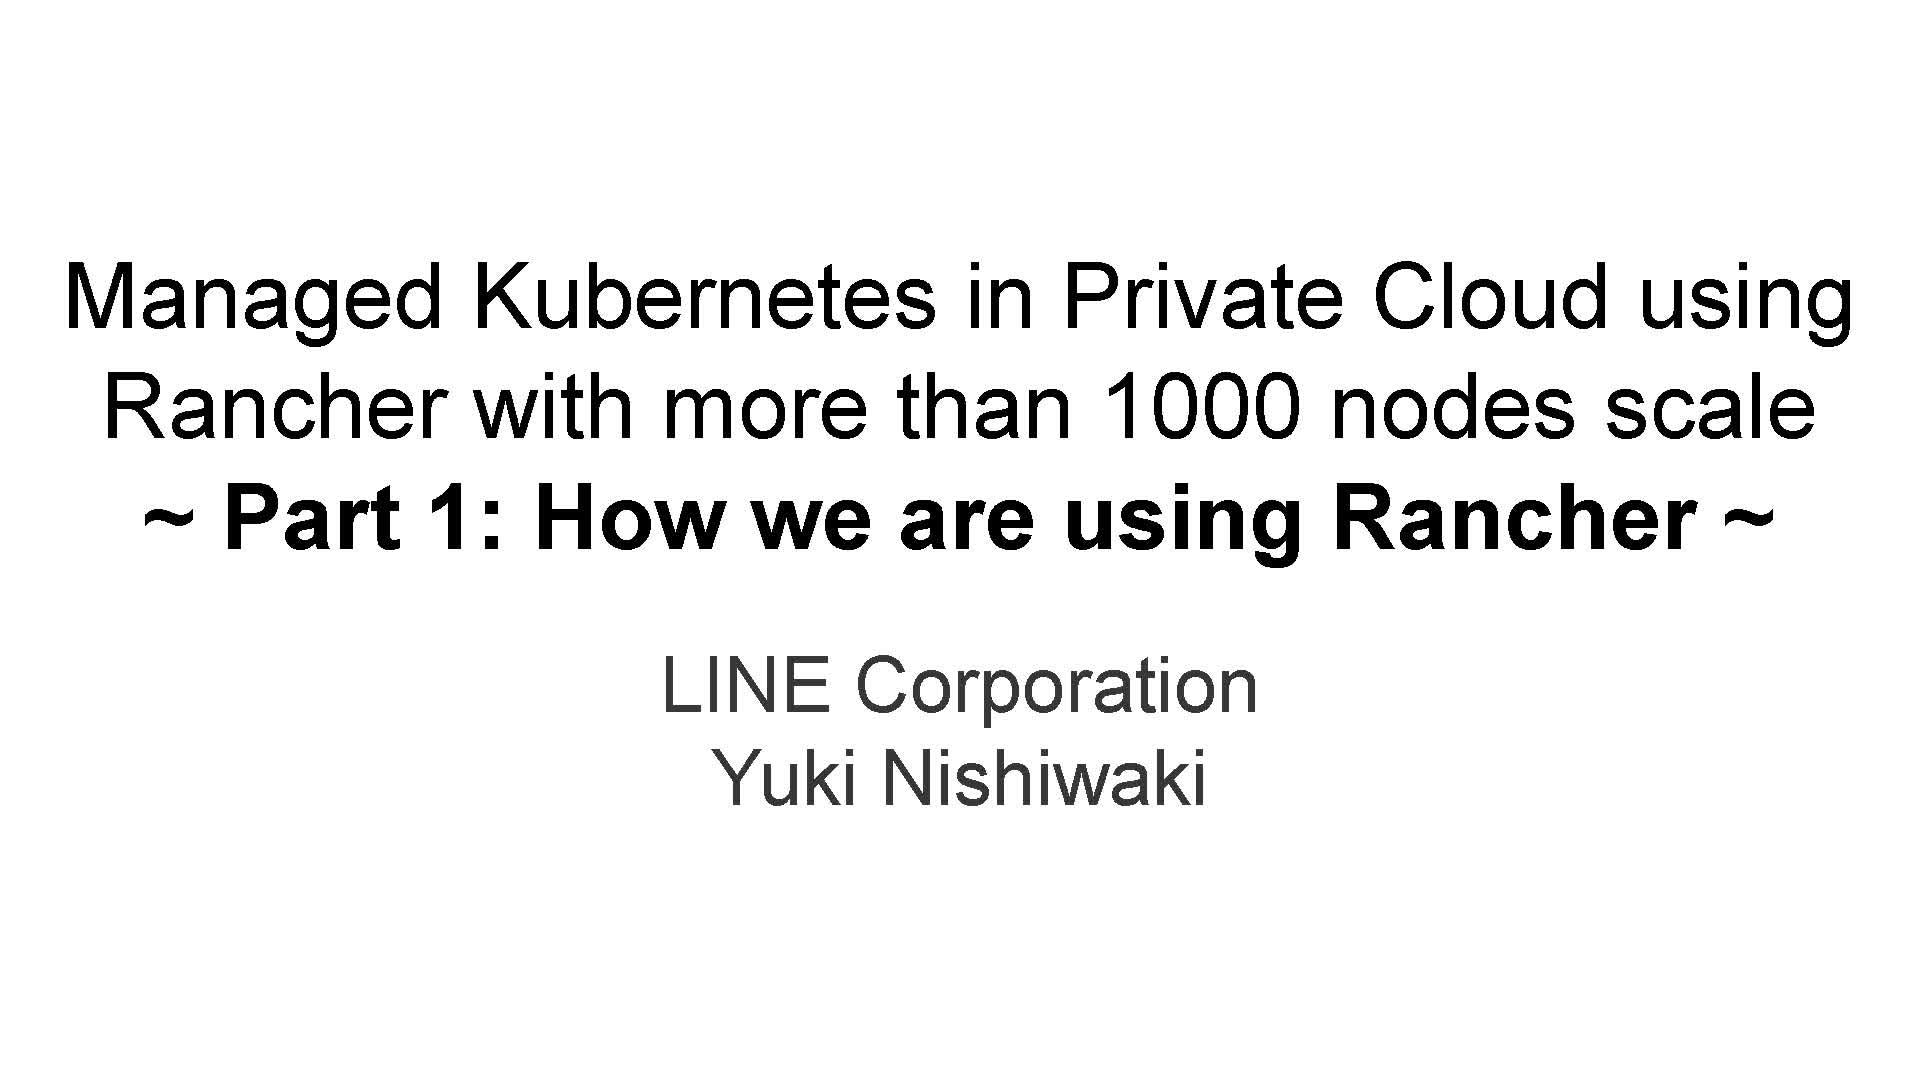 Managed k8s in Private Cloud using Rancher with more than 1000 nodes scale